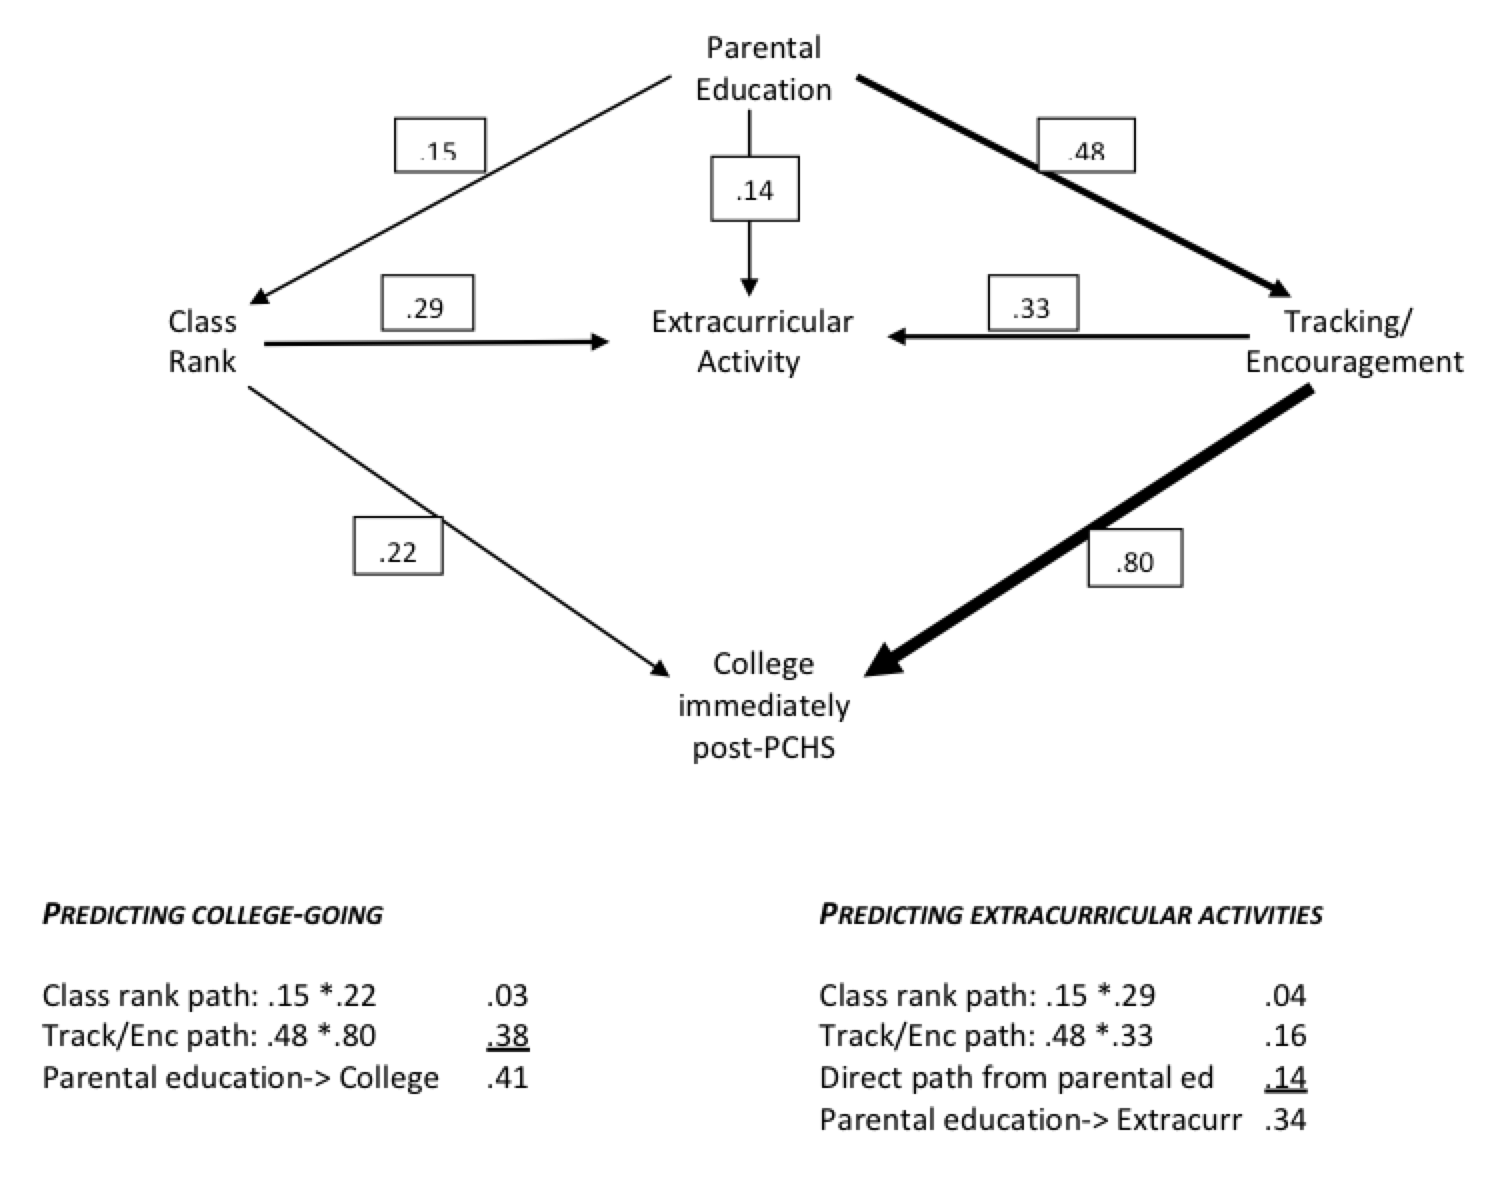 Research robert d putnam closely correlated with parental encouragement or high school tracking than was immediate college going a comparable path diagram predicting ultimate ccuart